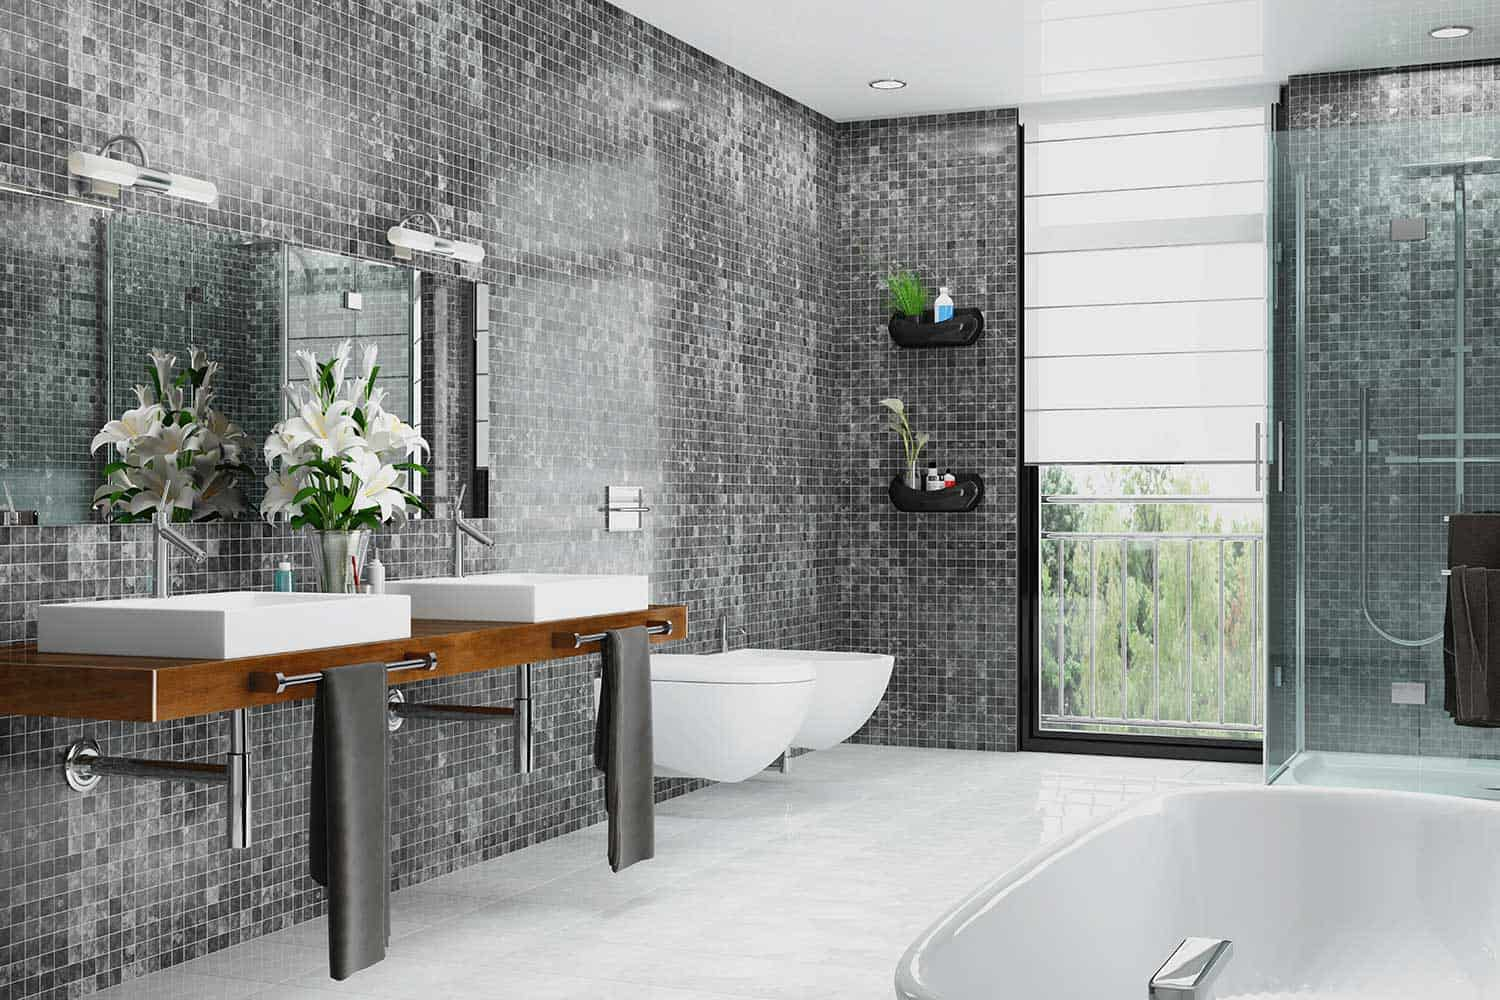 Modern bathroom with different shades of gray tile